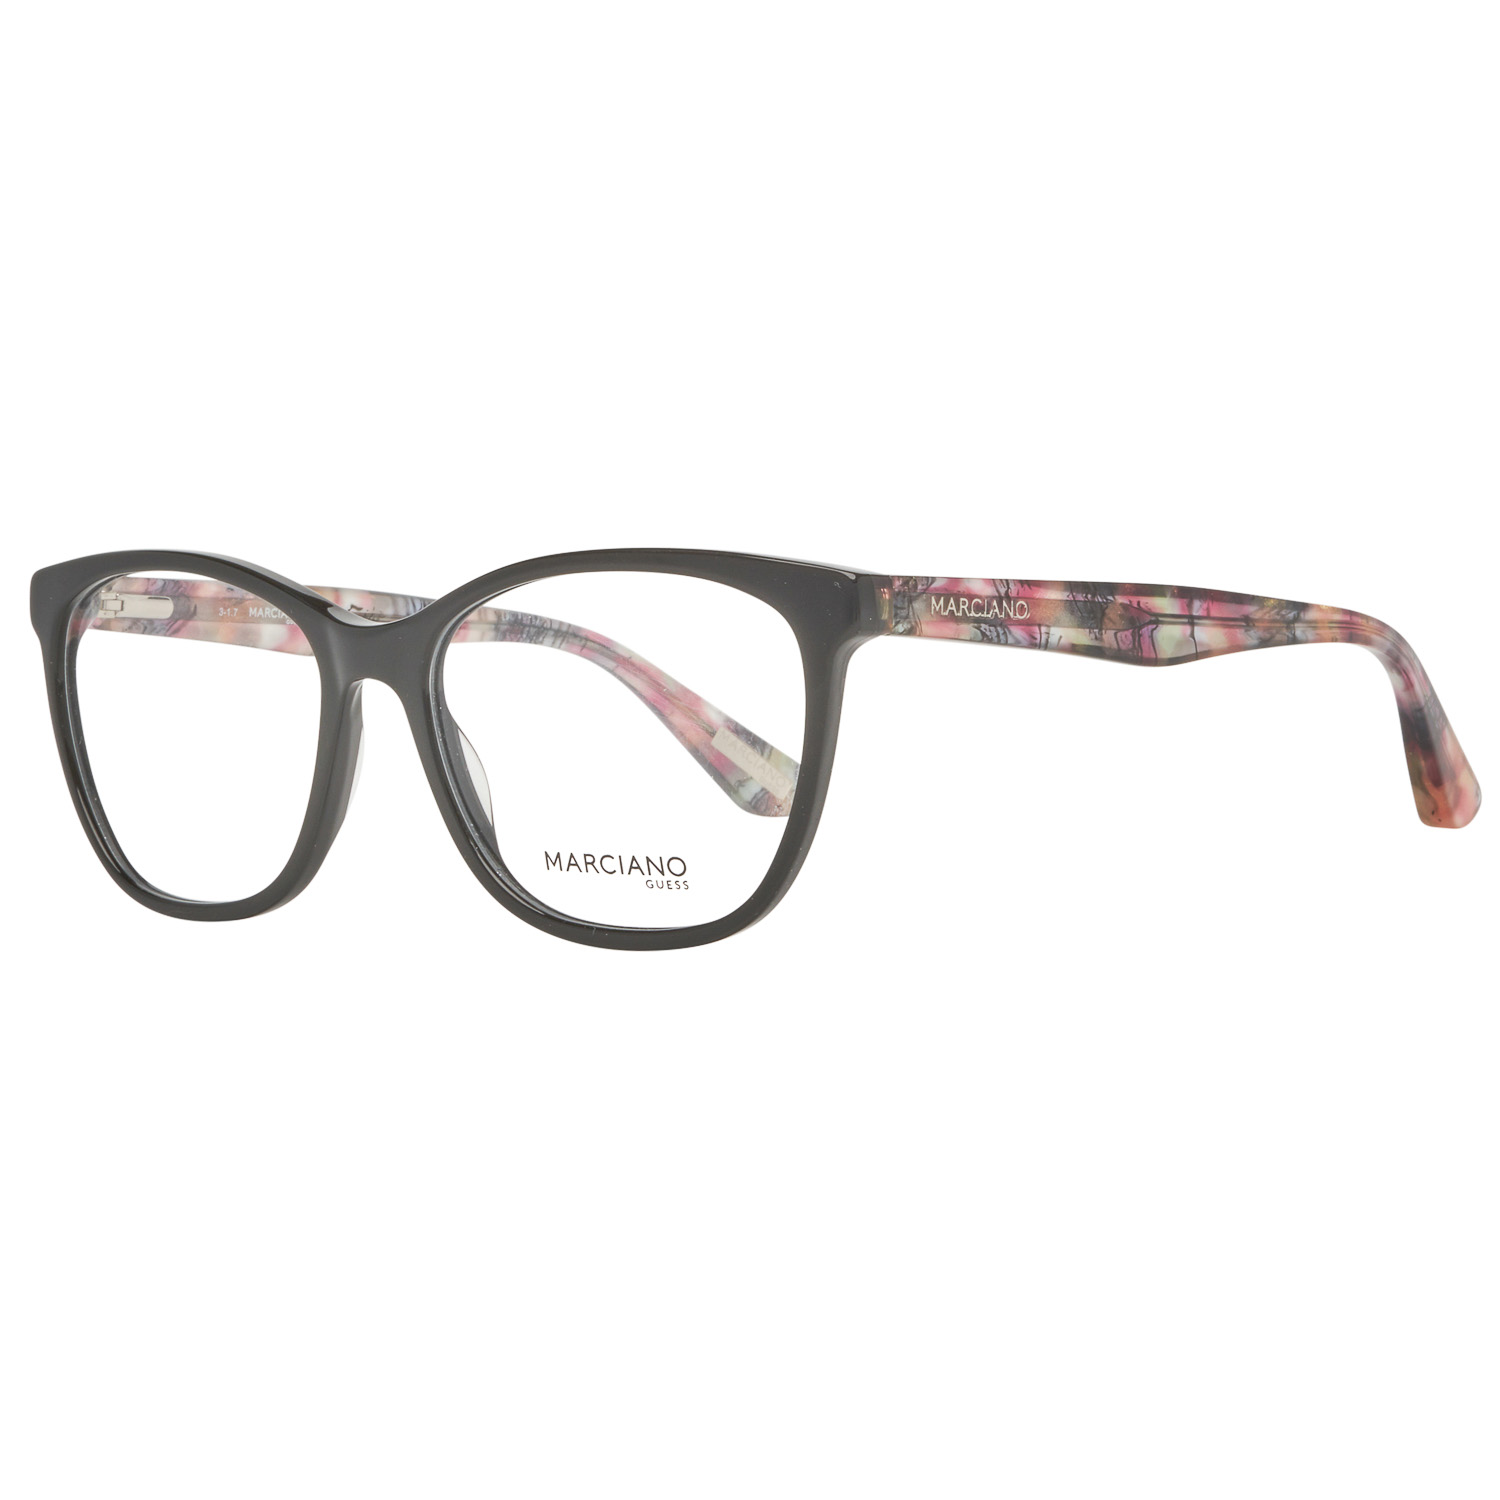 Guess by Marciano Optical Frame GM0316 001 53 Black